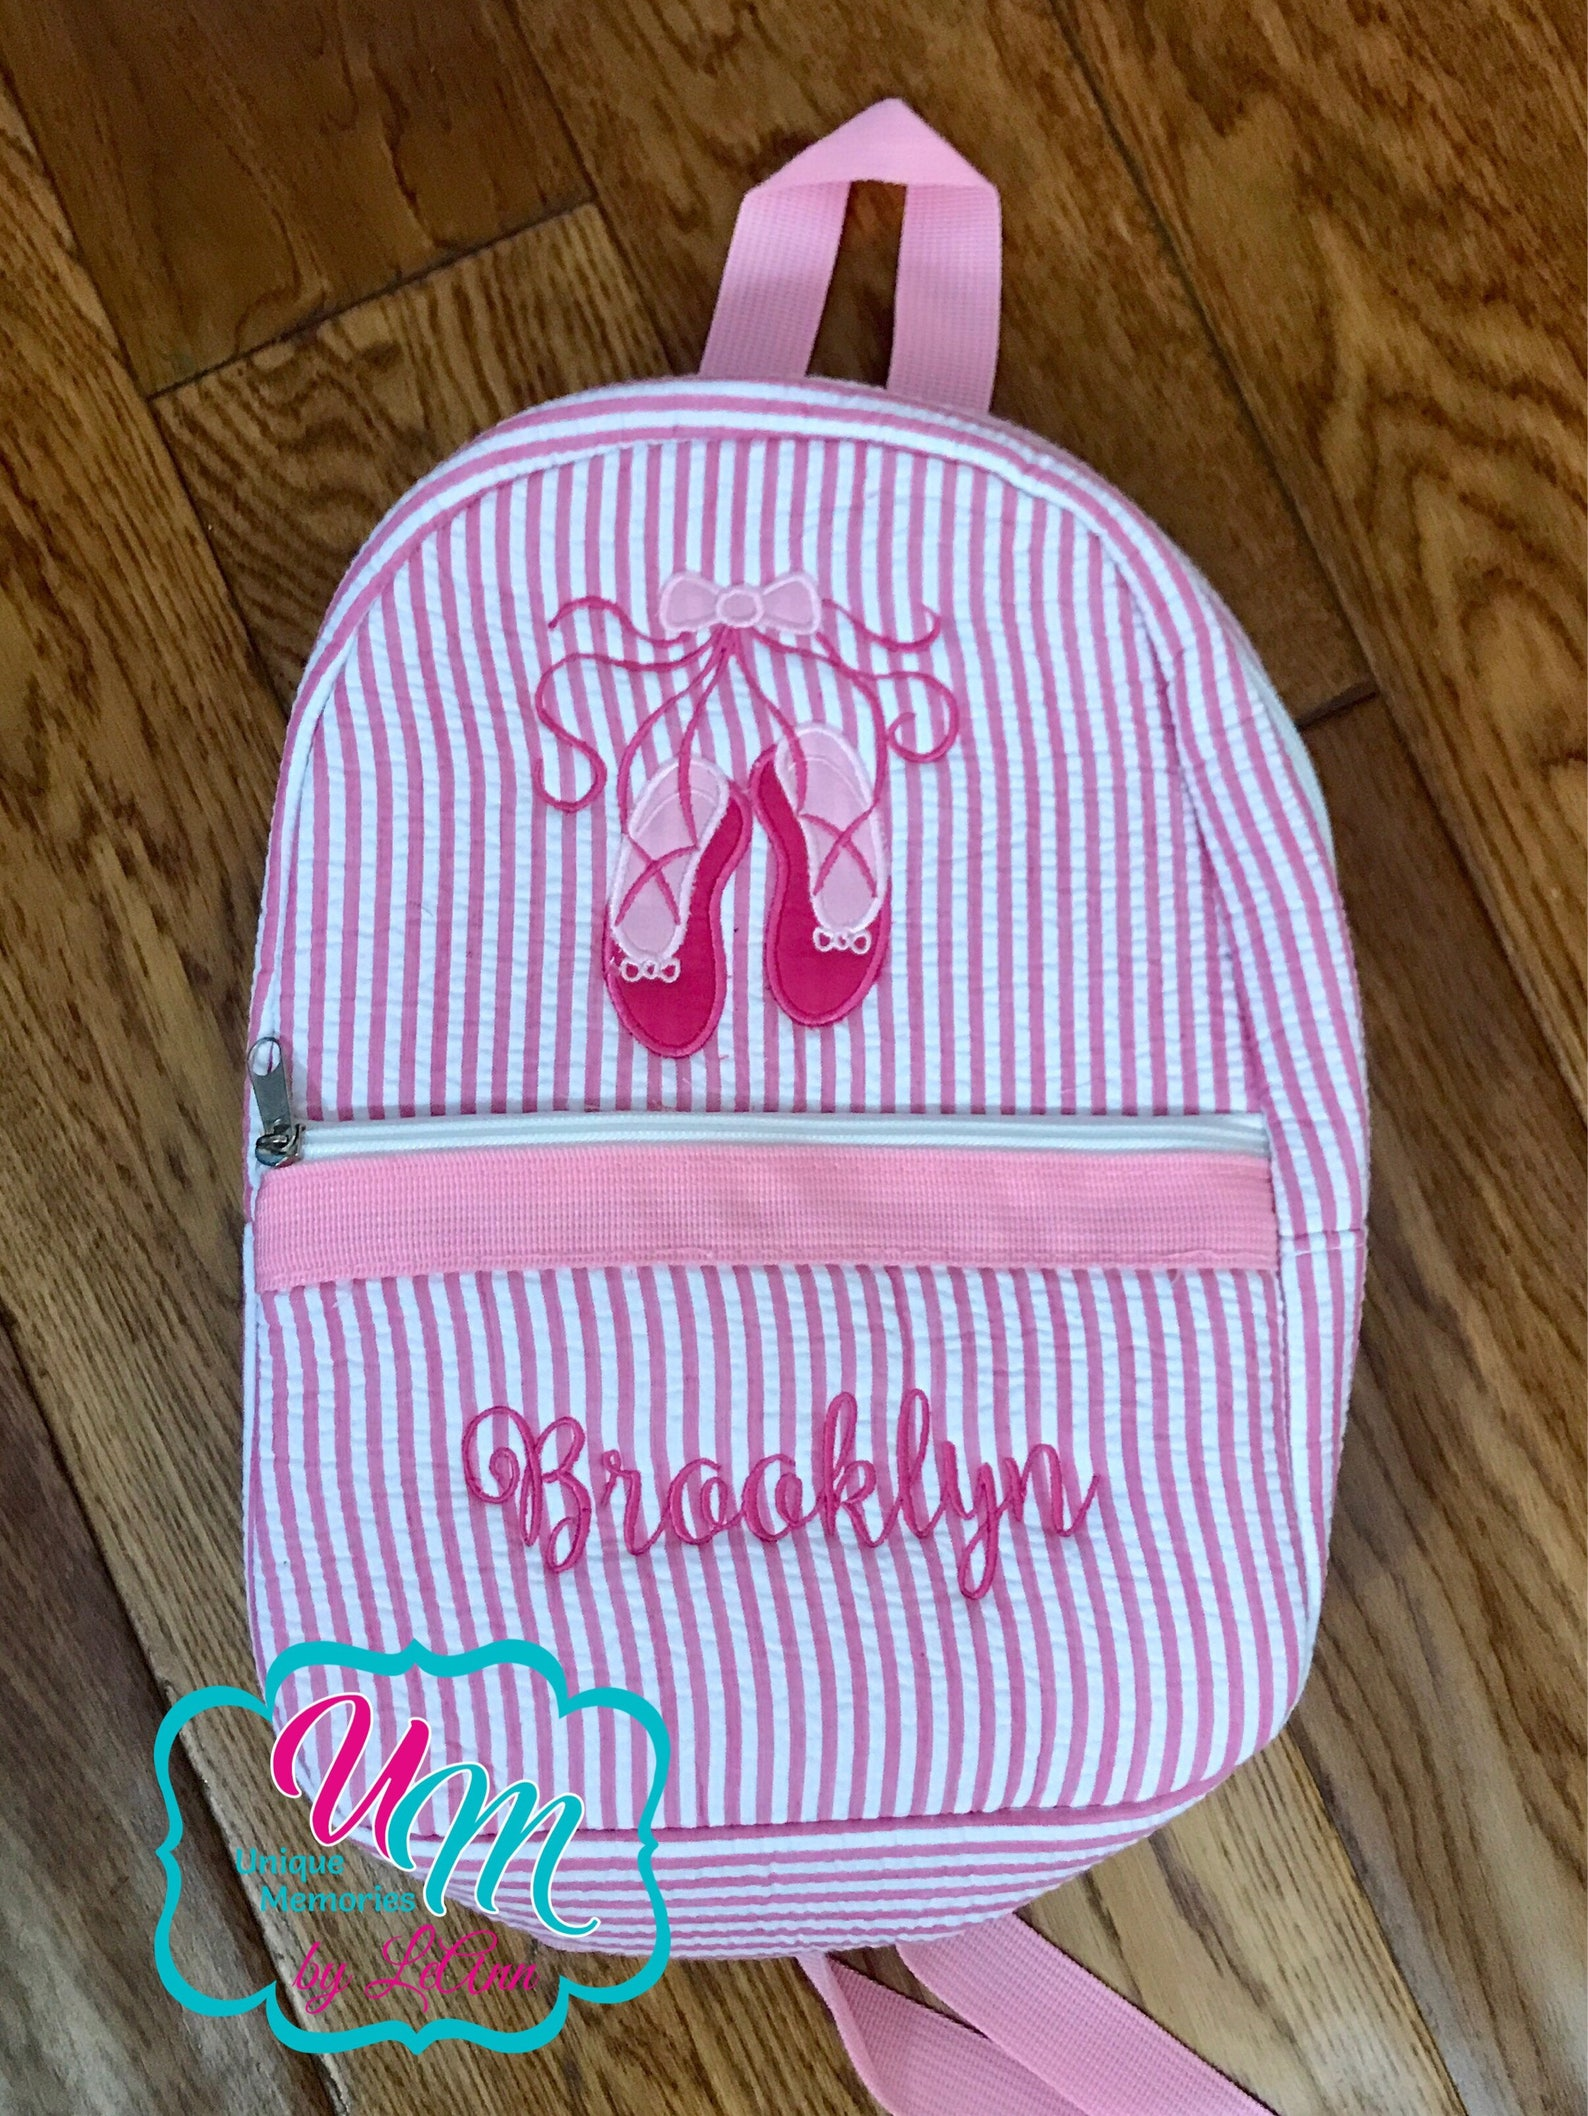 mini seersucker backpack ballet shoes appliqué free name/monogram - school bag, children's backpack, quilted, dance bag, min